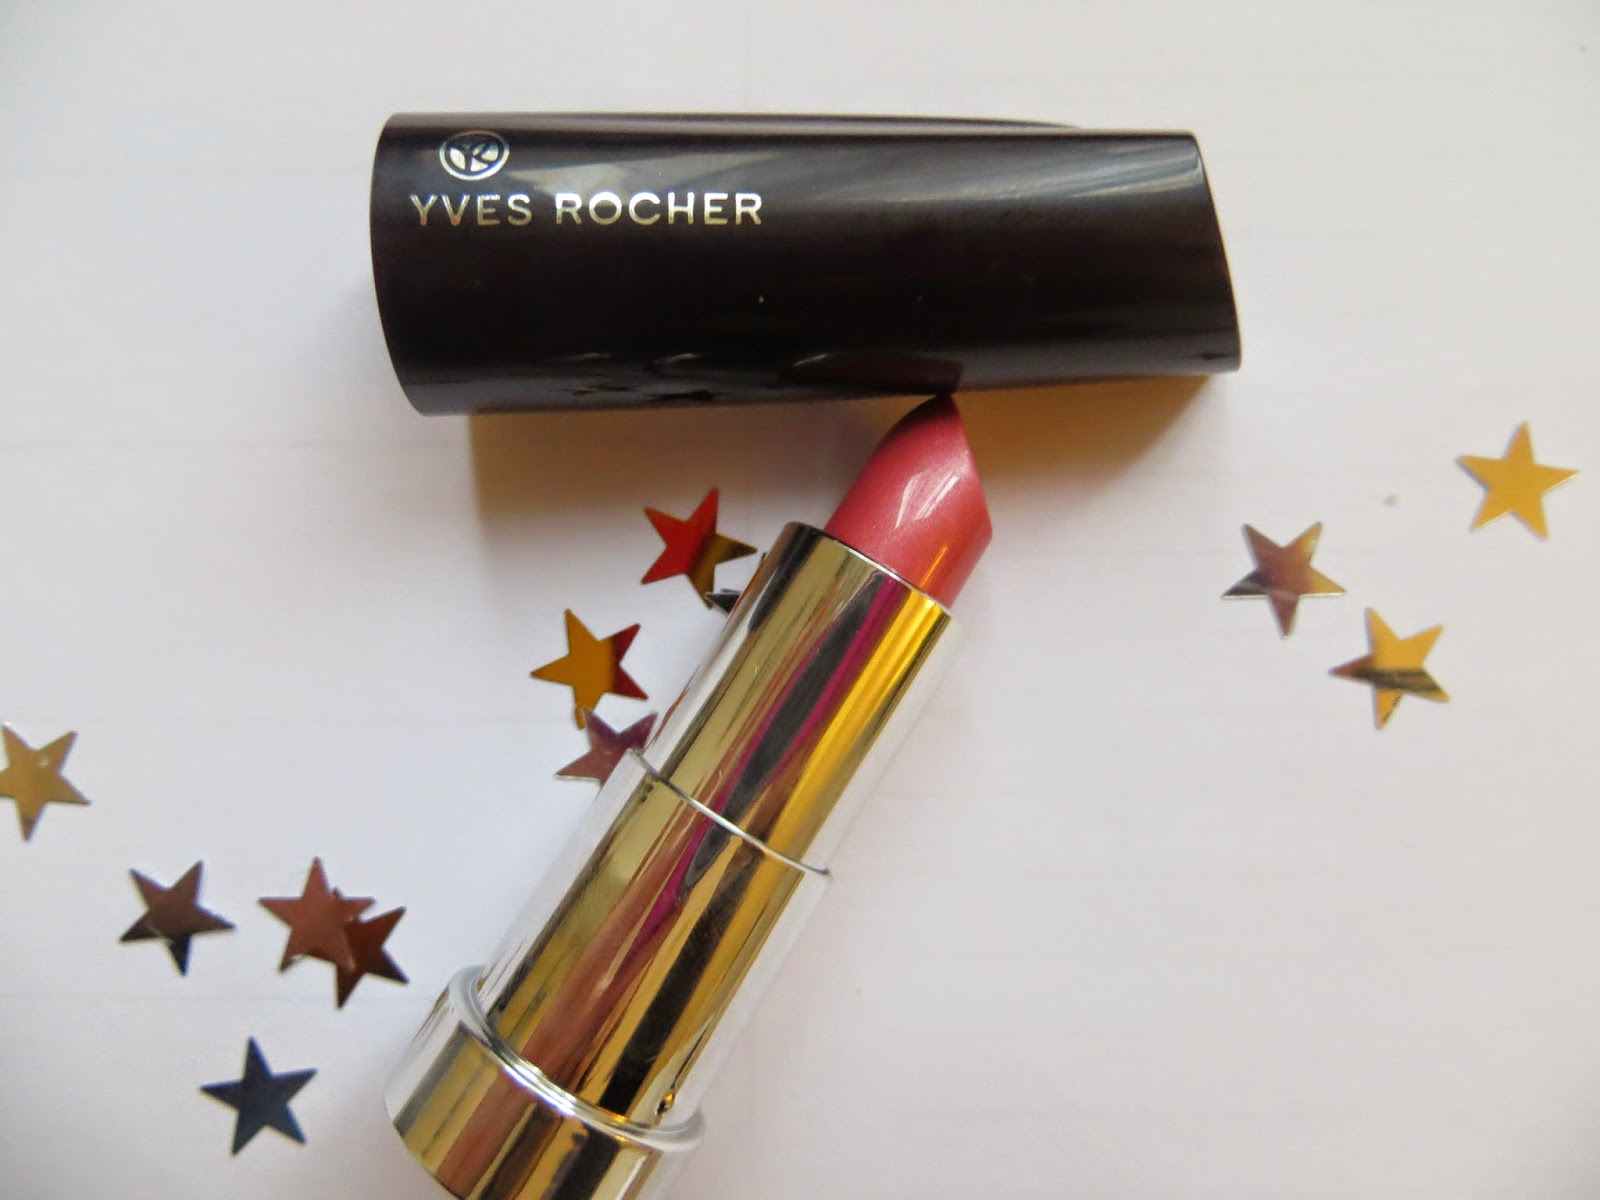 Yves Rocher, Lipstick, MAC, Yves Rocher review, lipstick review, pink lipstick, swatch, blogger review, frost finish